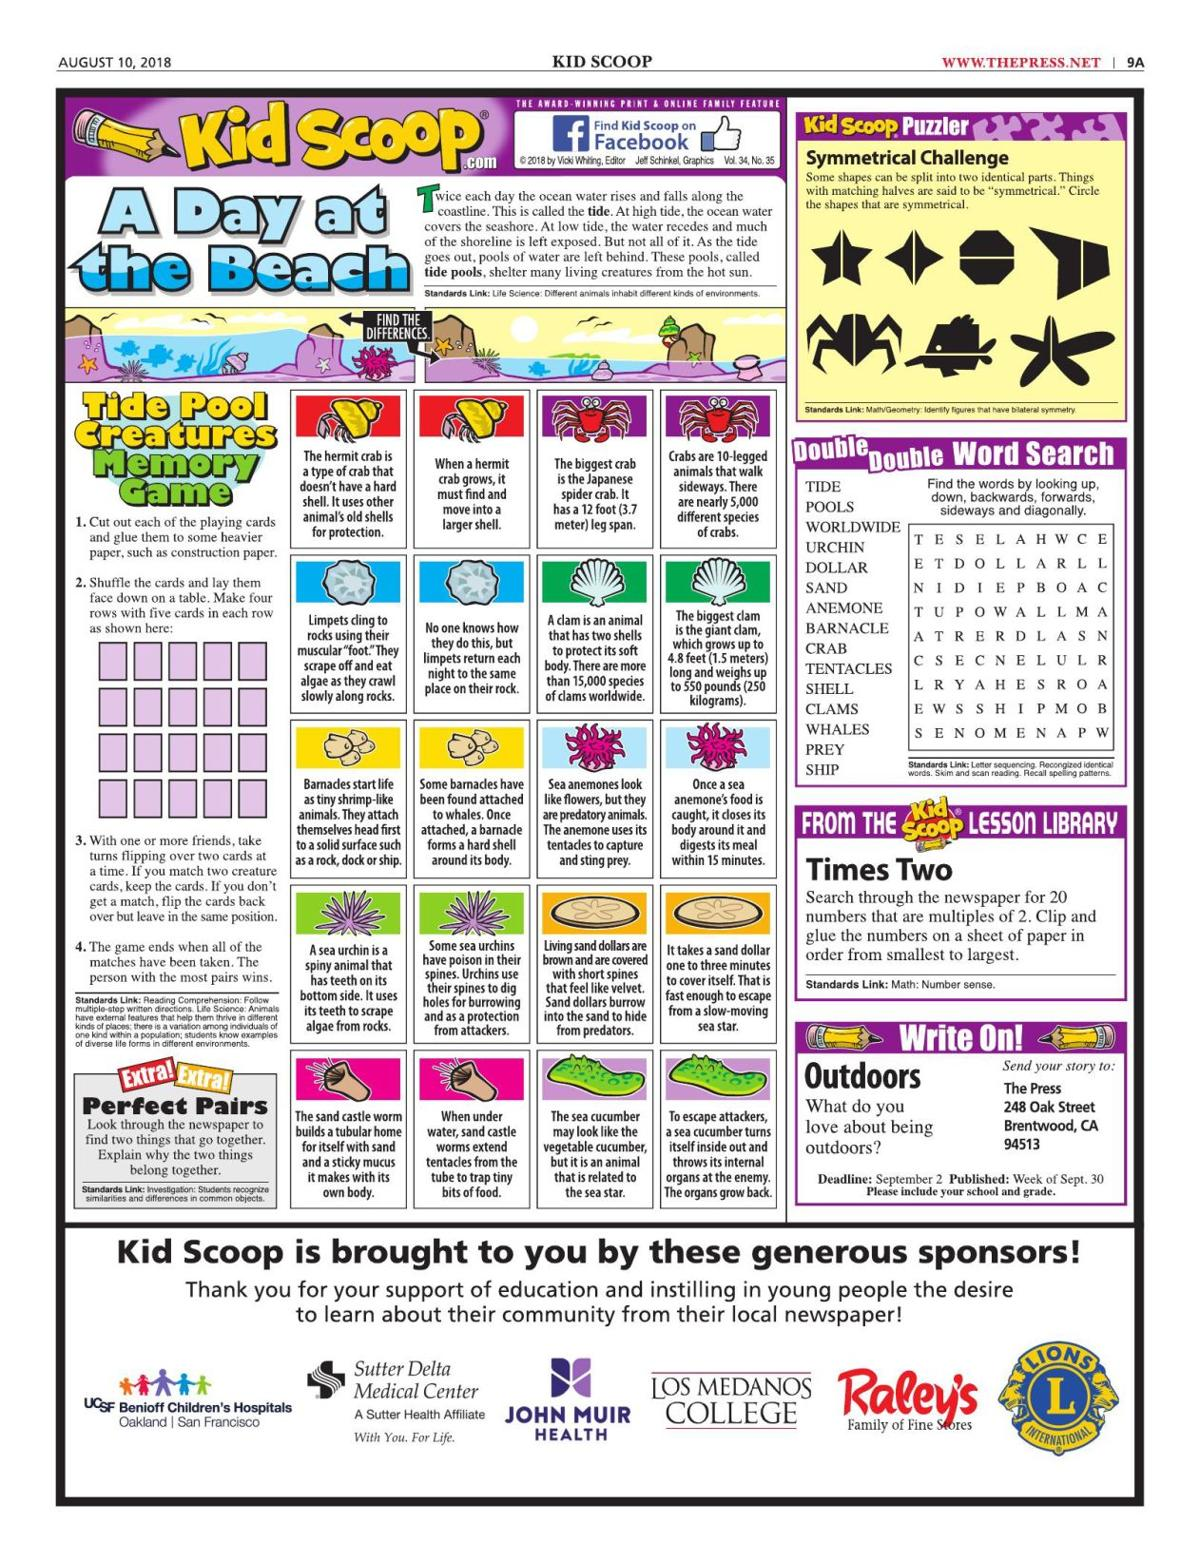 A Day at the Beach 8-10-18 pdf | Kid Scoop | thepress net